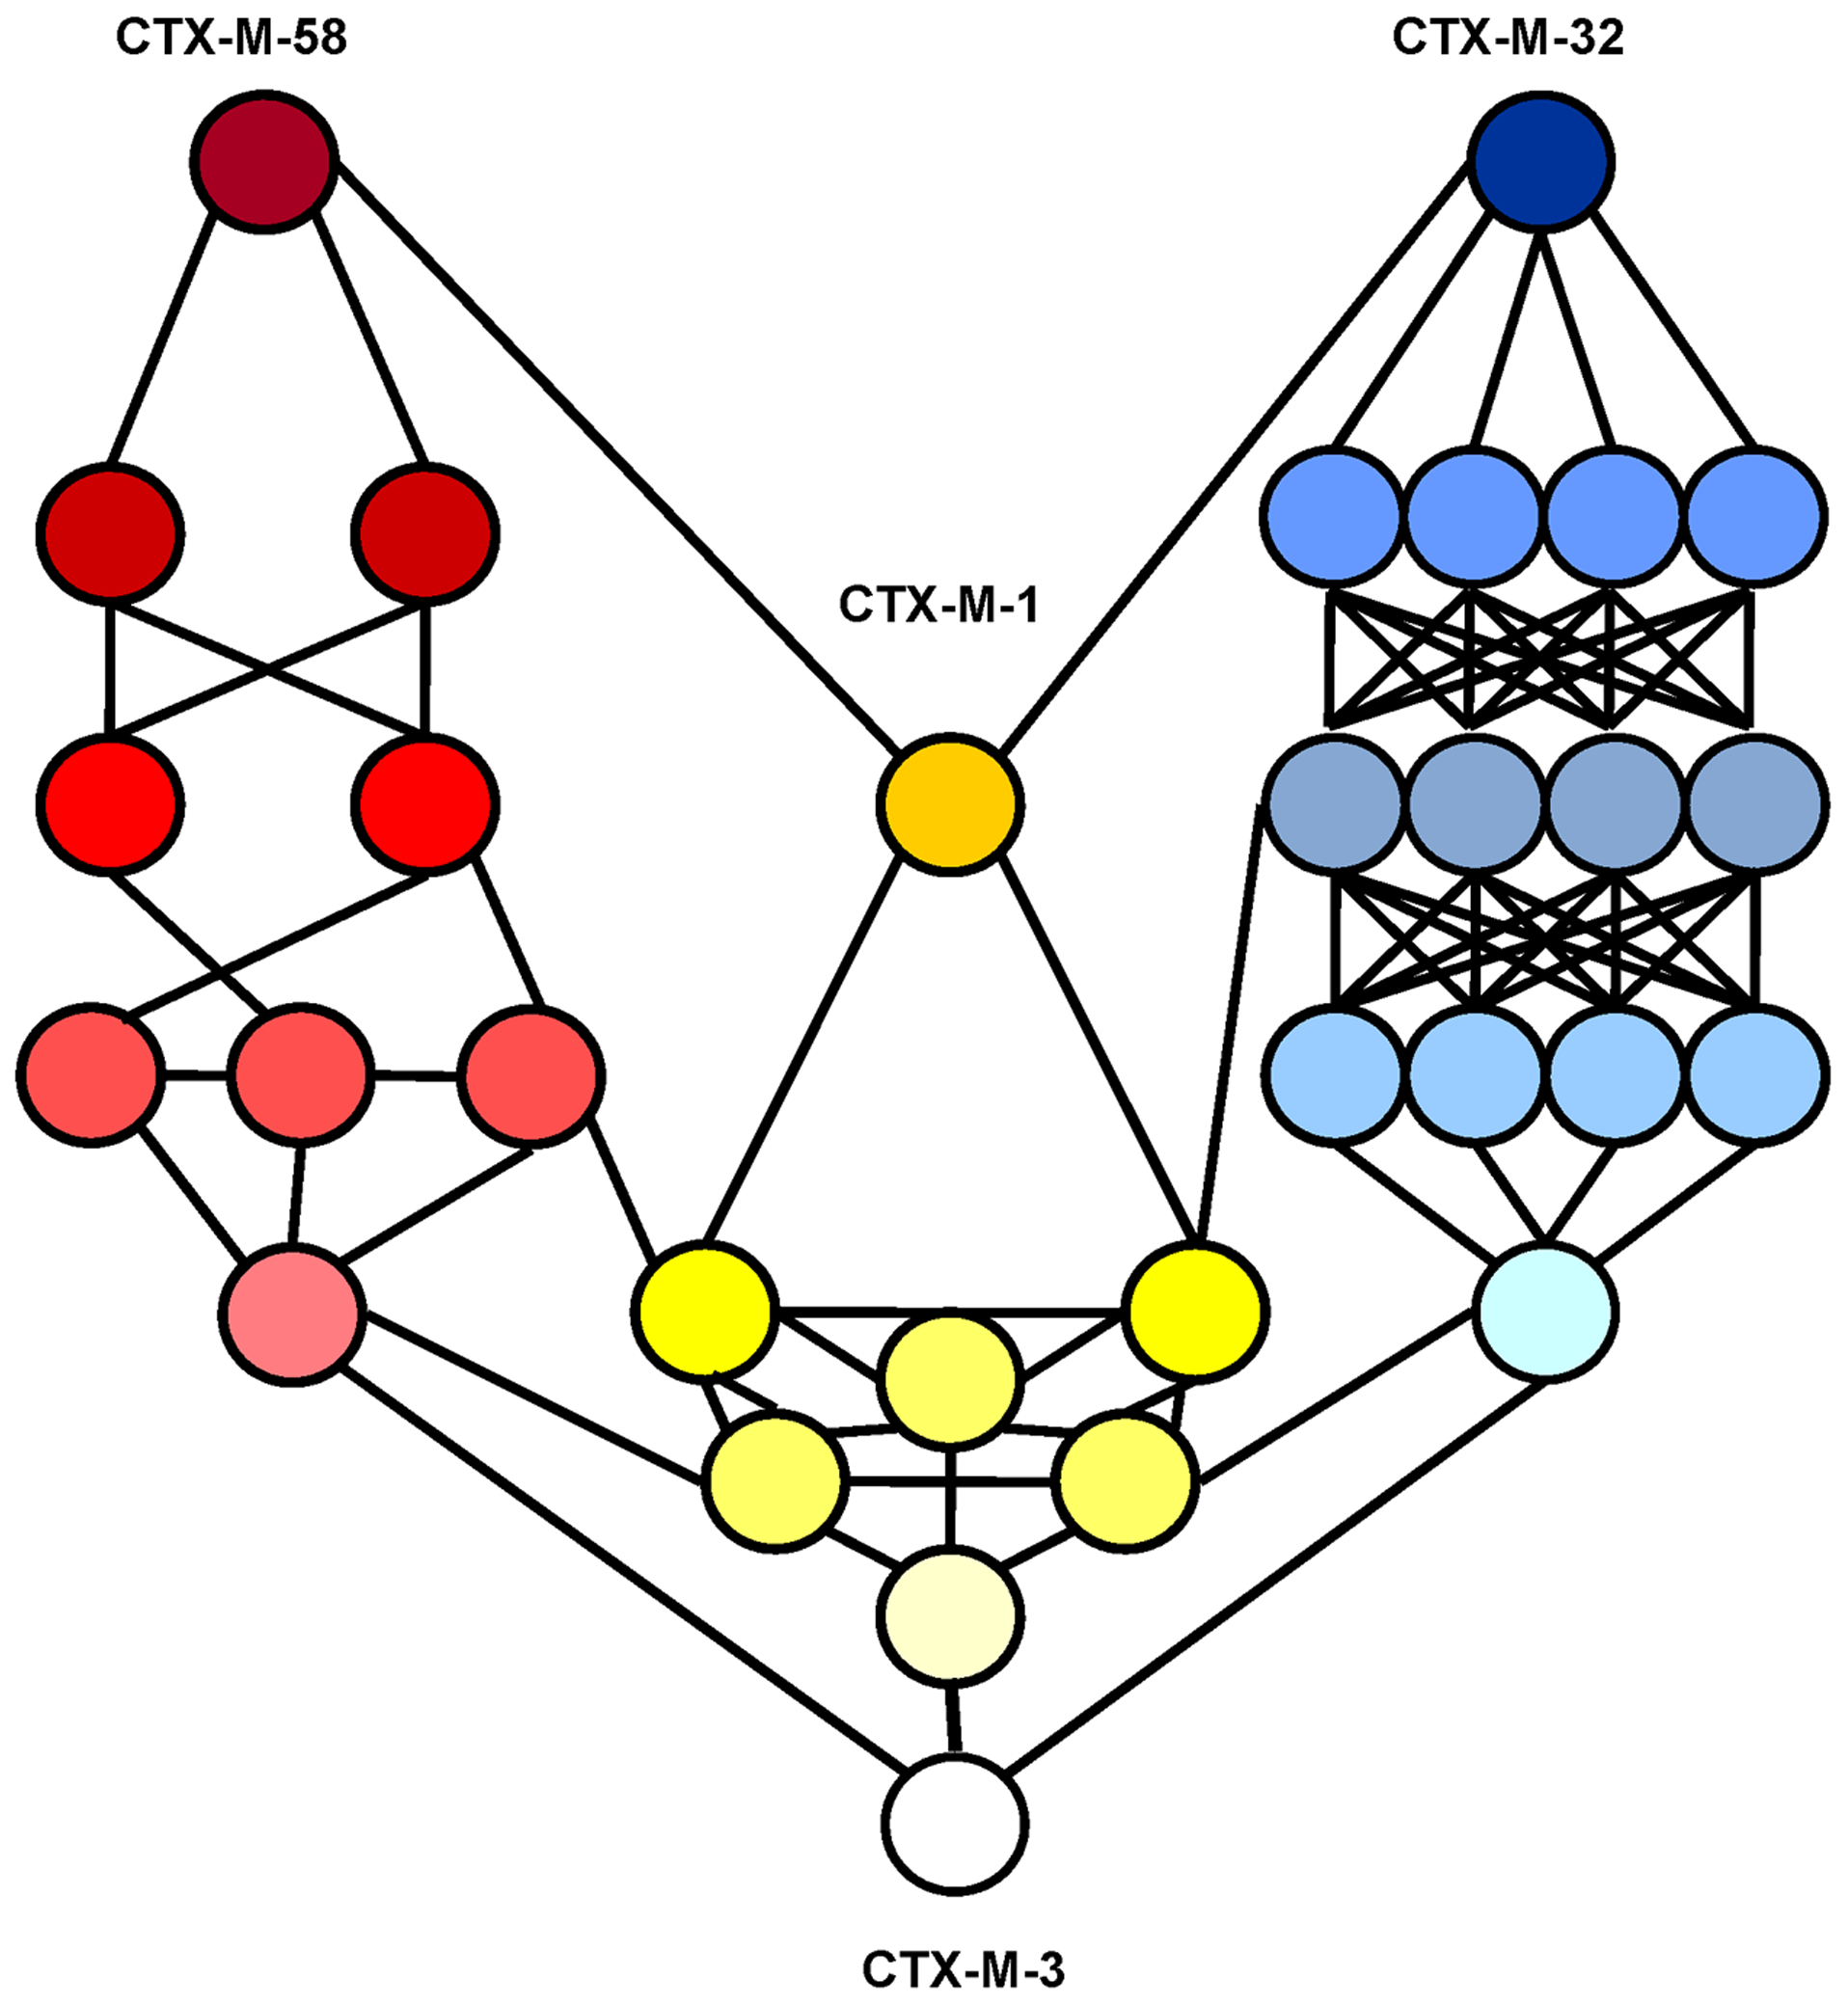 Interconnectedness of three CTX-M-3 diversification routes.